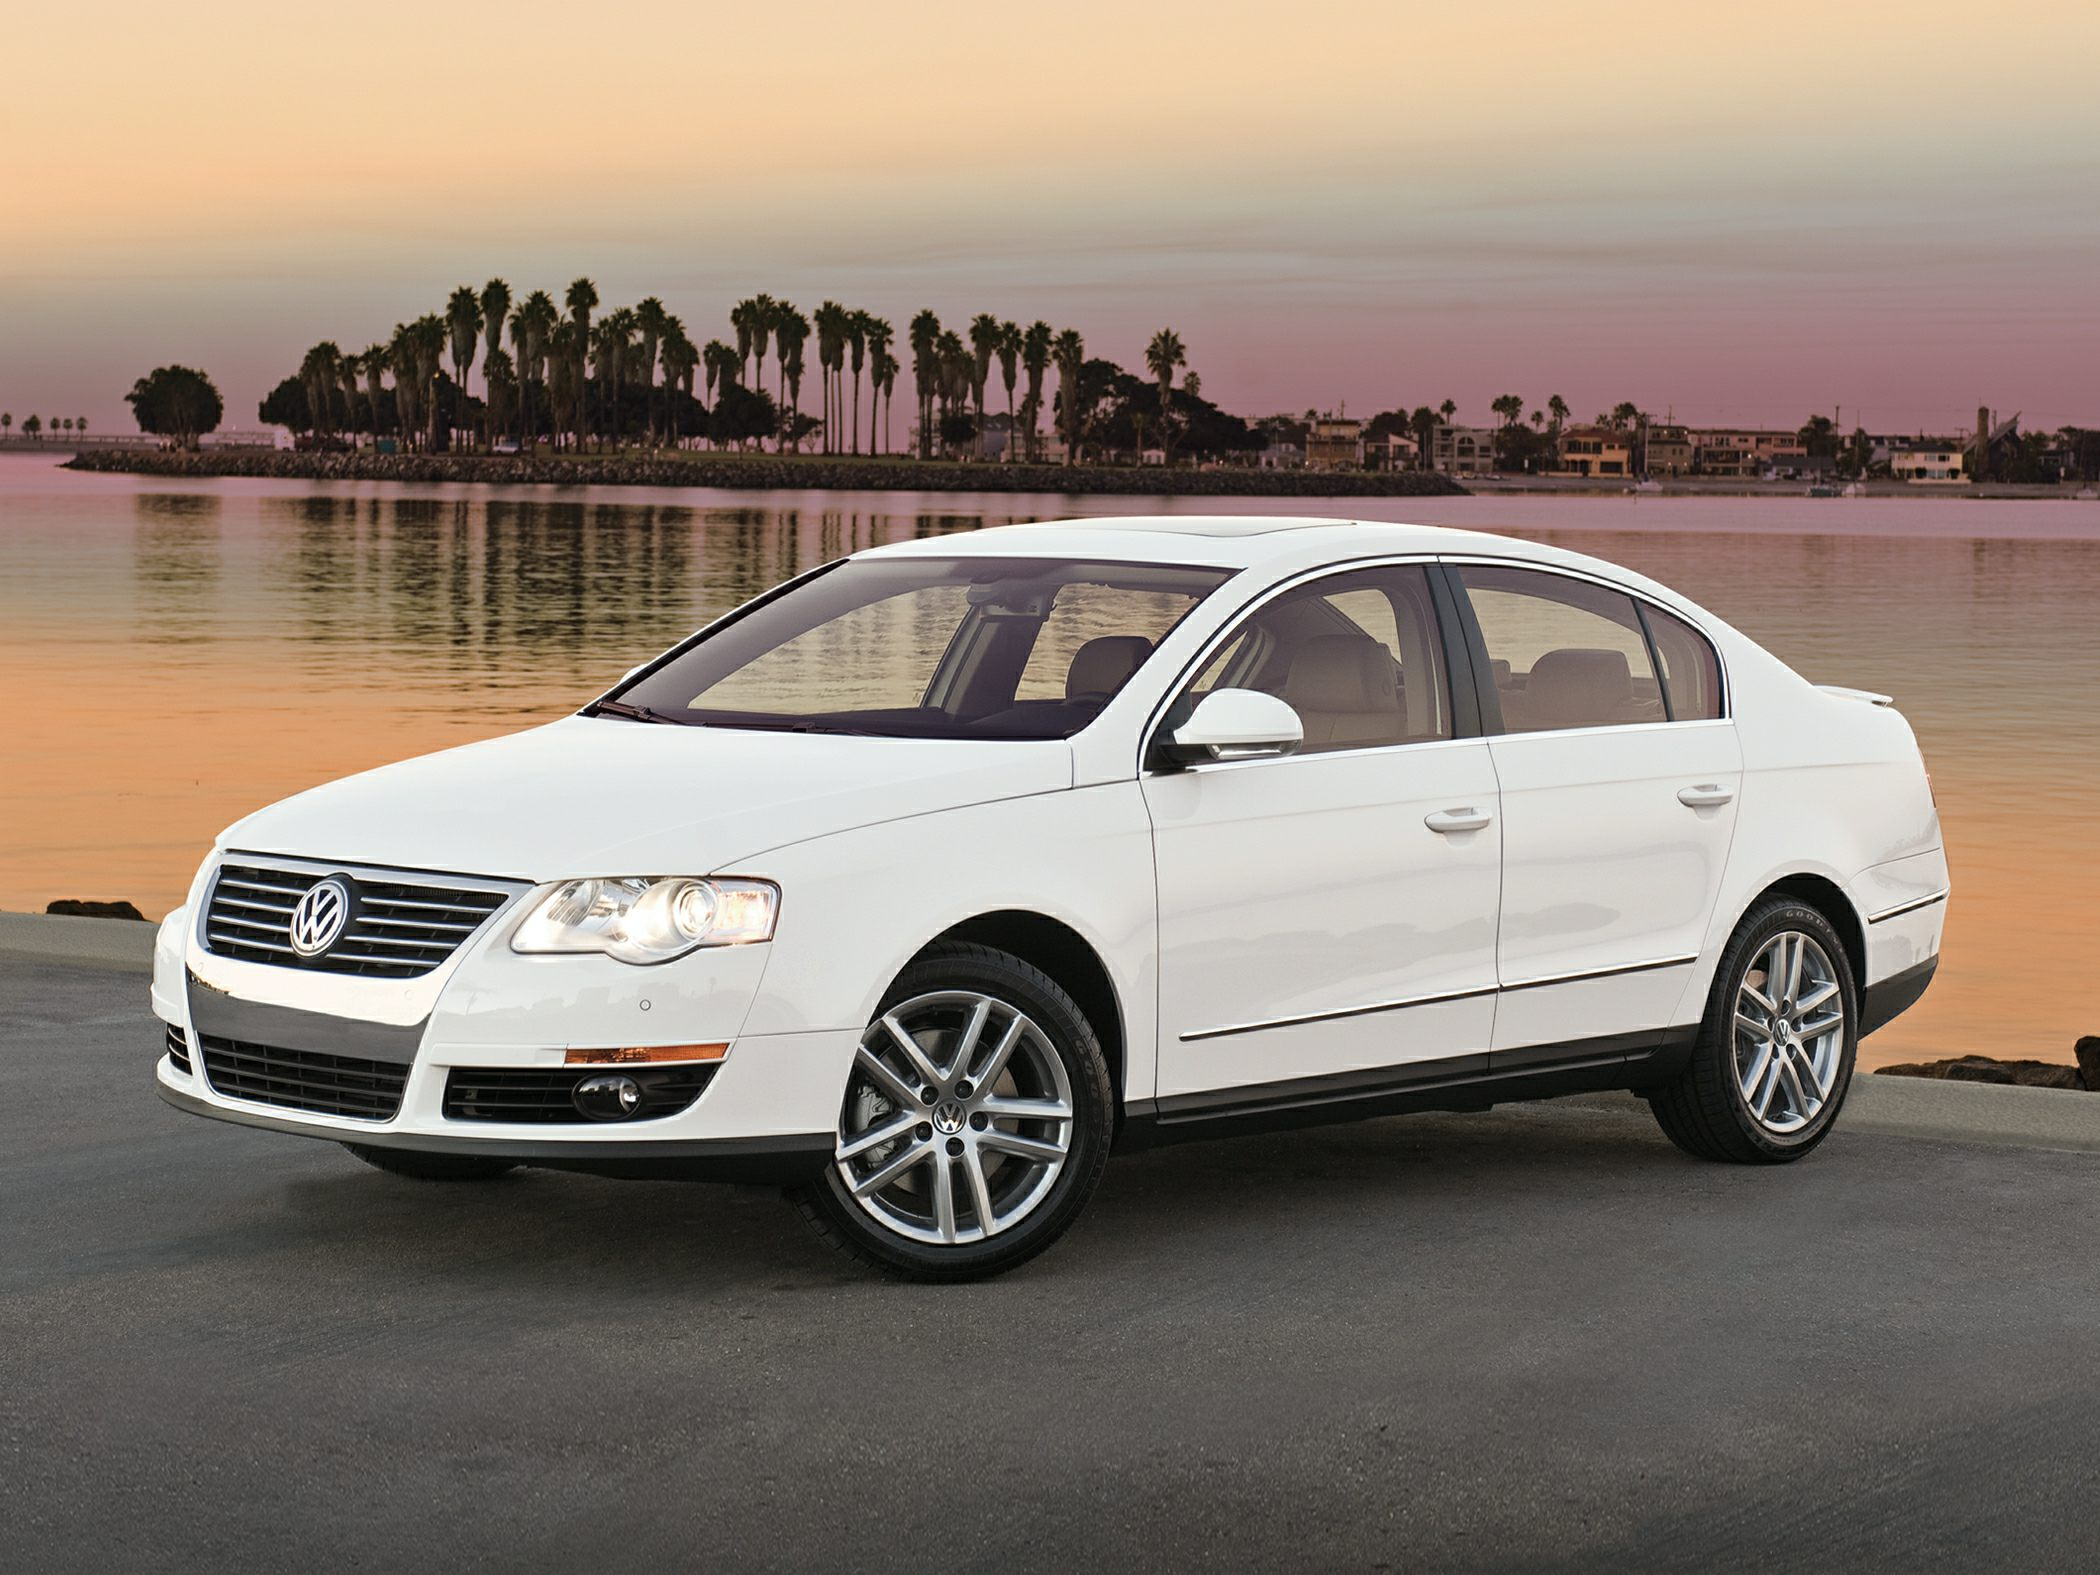 2010 Volkswagen Passat Komfort White Spotless One-Owner White Beauty Type your sentence here Yo